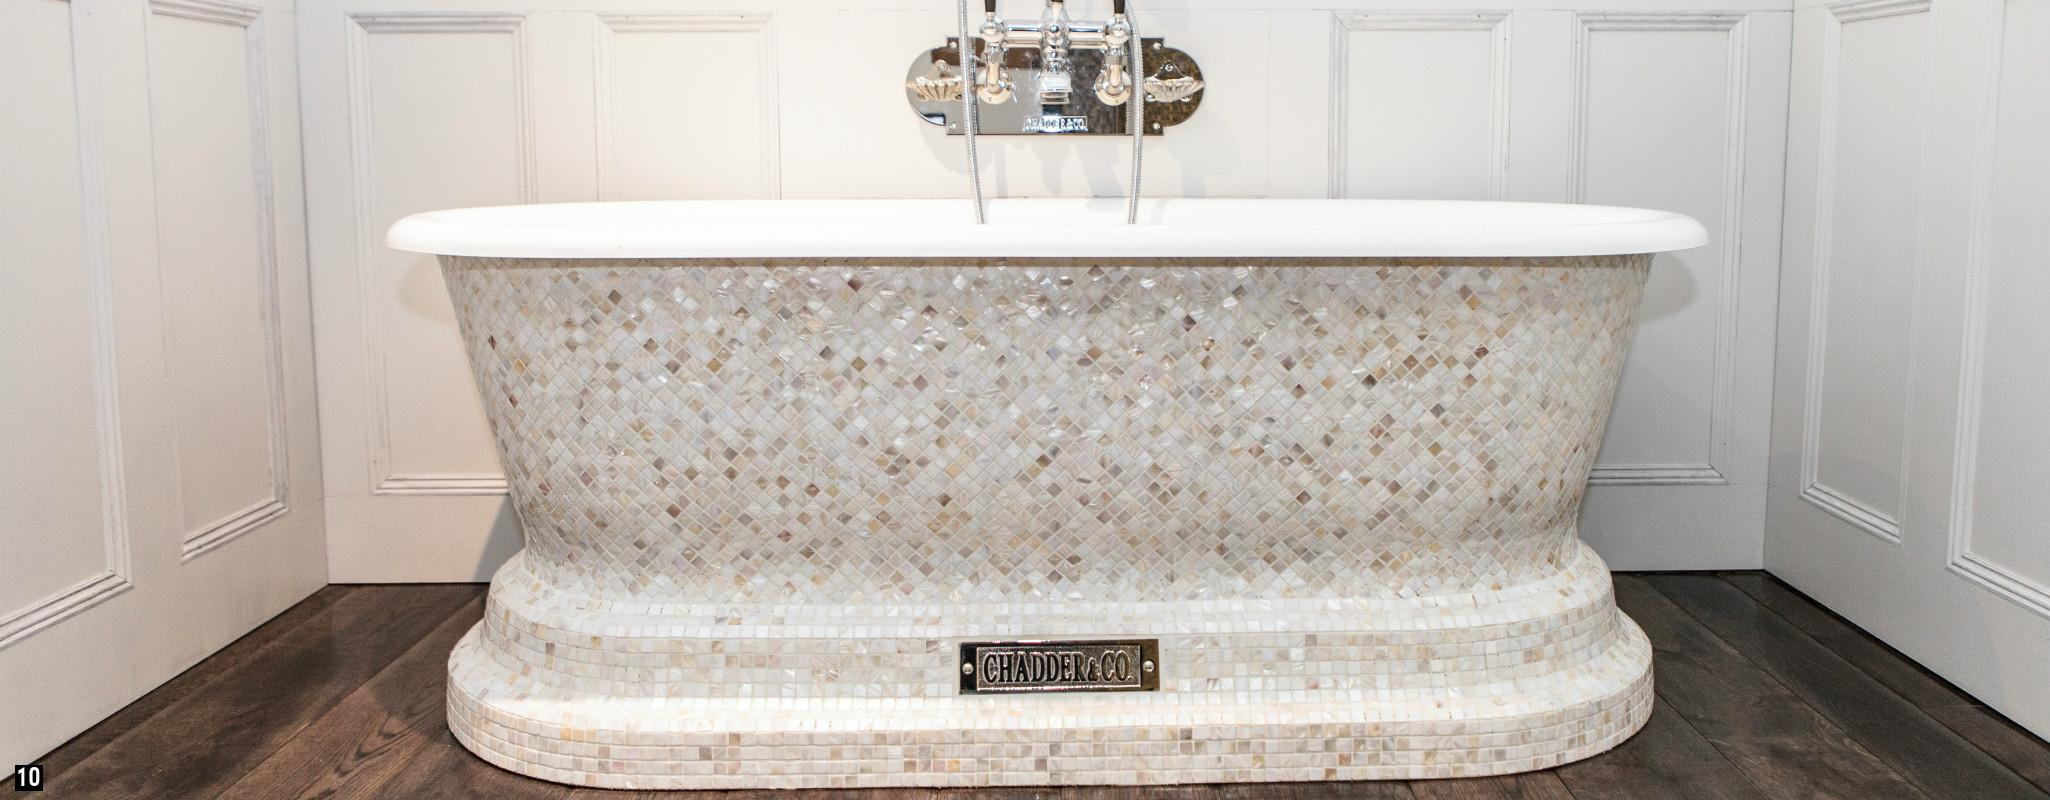 Mosaic Chadder Bath with Chadder Mosaics ,  Mother of Pearl Mosaic Bath , Bespoke Mosaic Chadder Bath